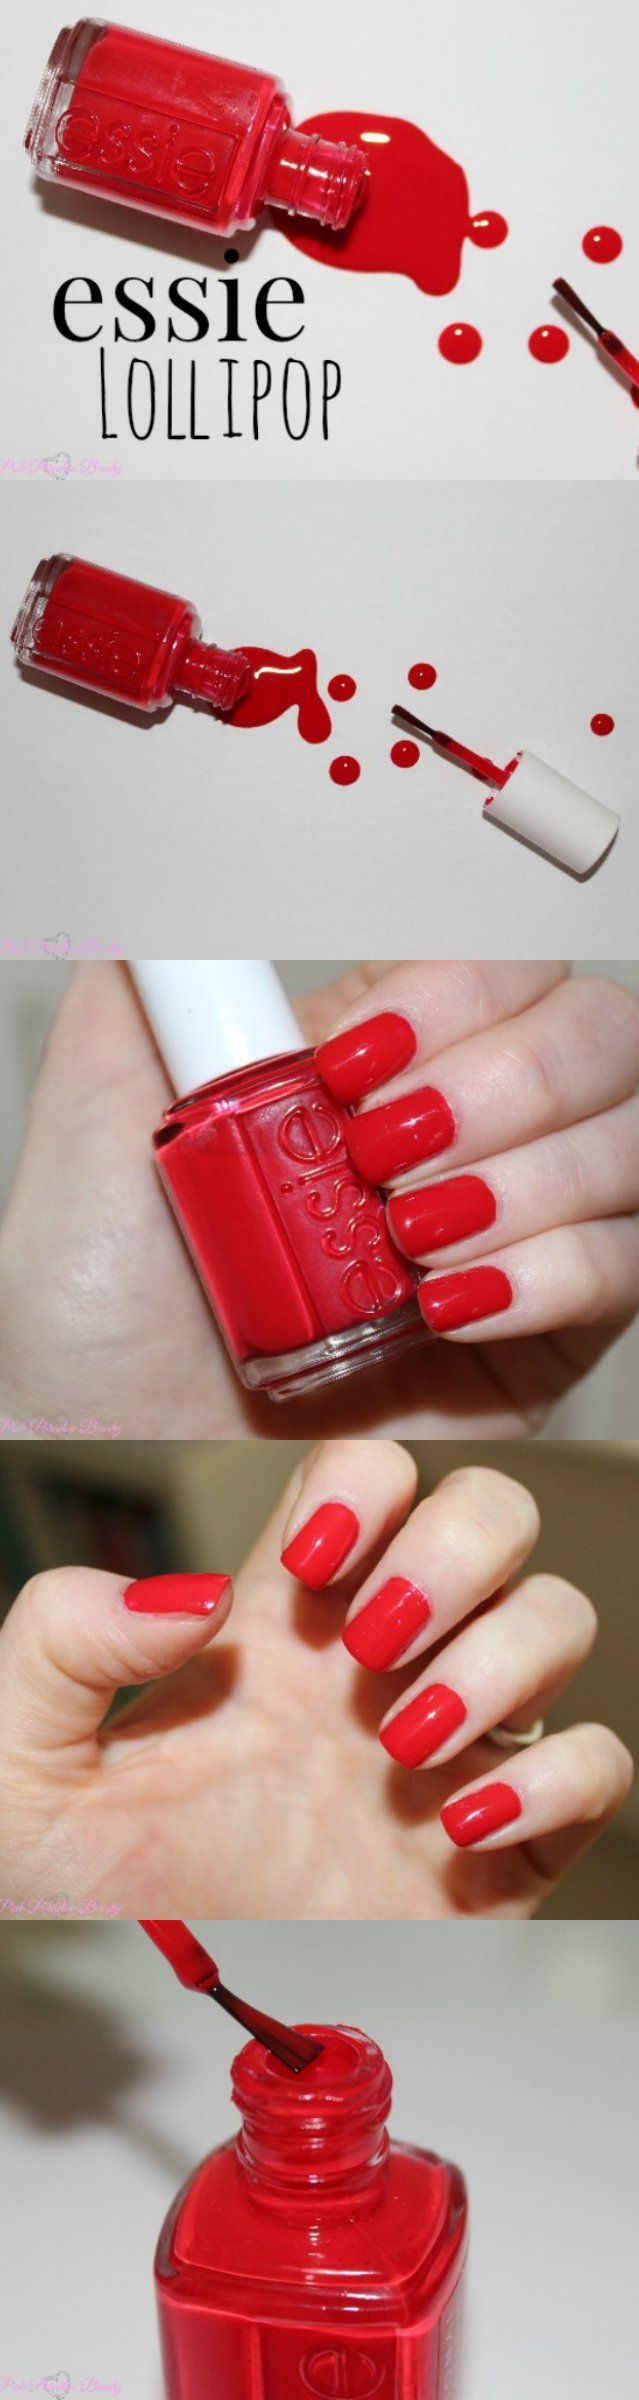 150 best ESSIE NAIL POLISH images on Pinterest | Nail scissors, Nail ...